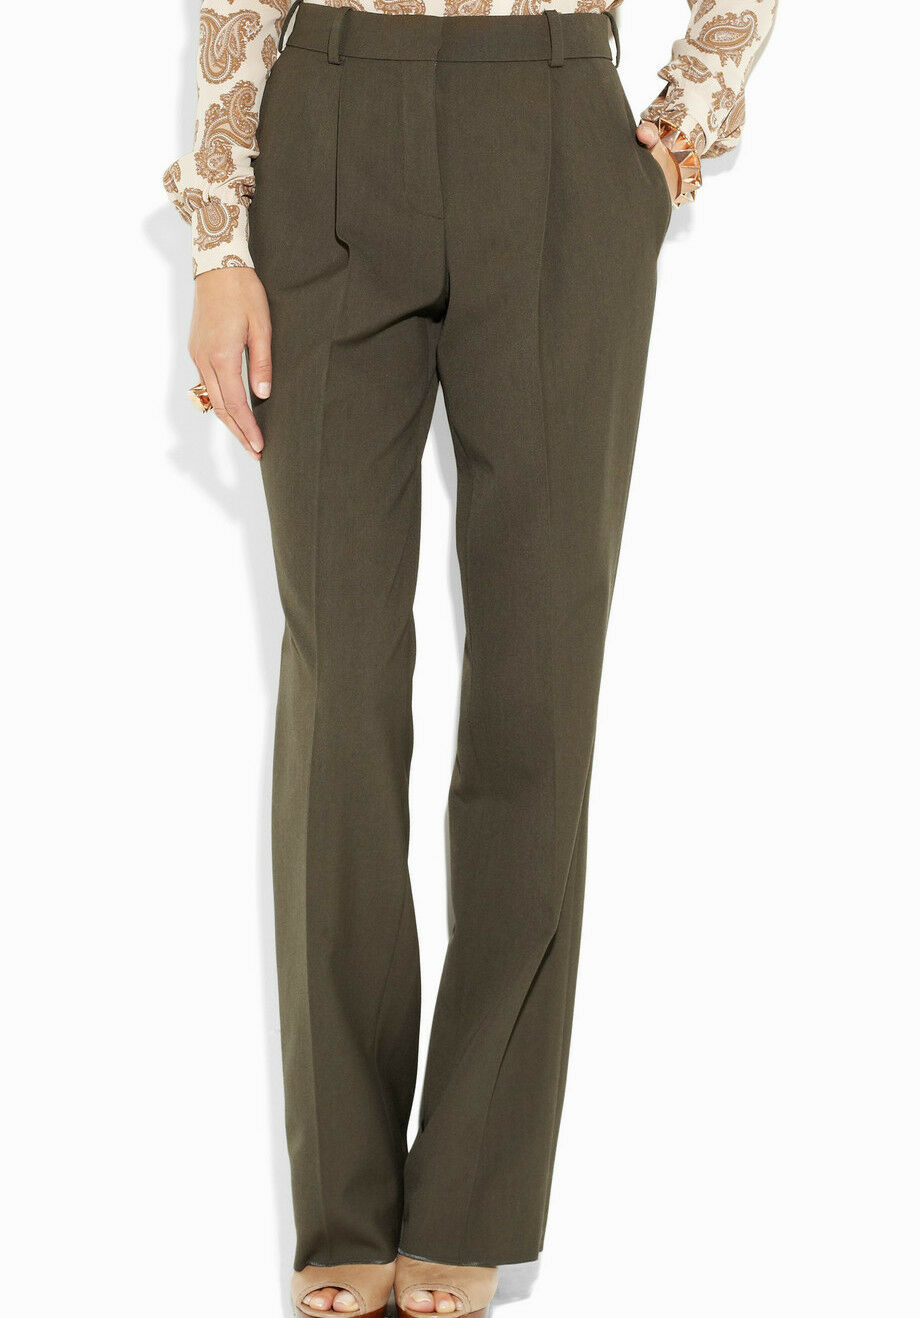 NWT  Designer CHLOÉ High-waisted Wool Wide-leg Trousers PANTS FR 40 42